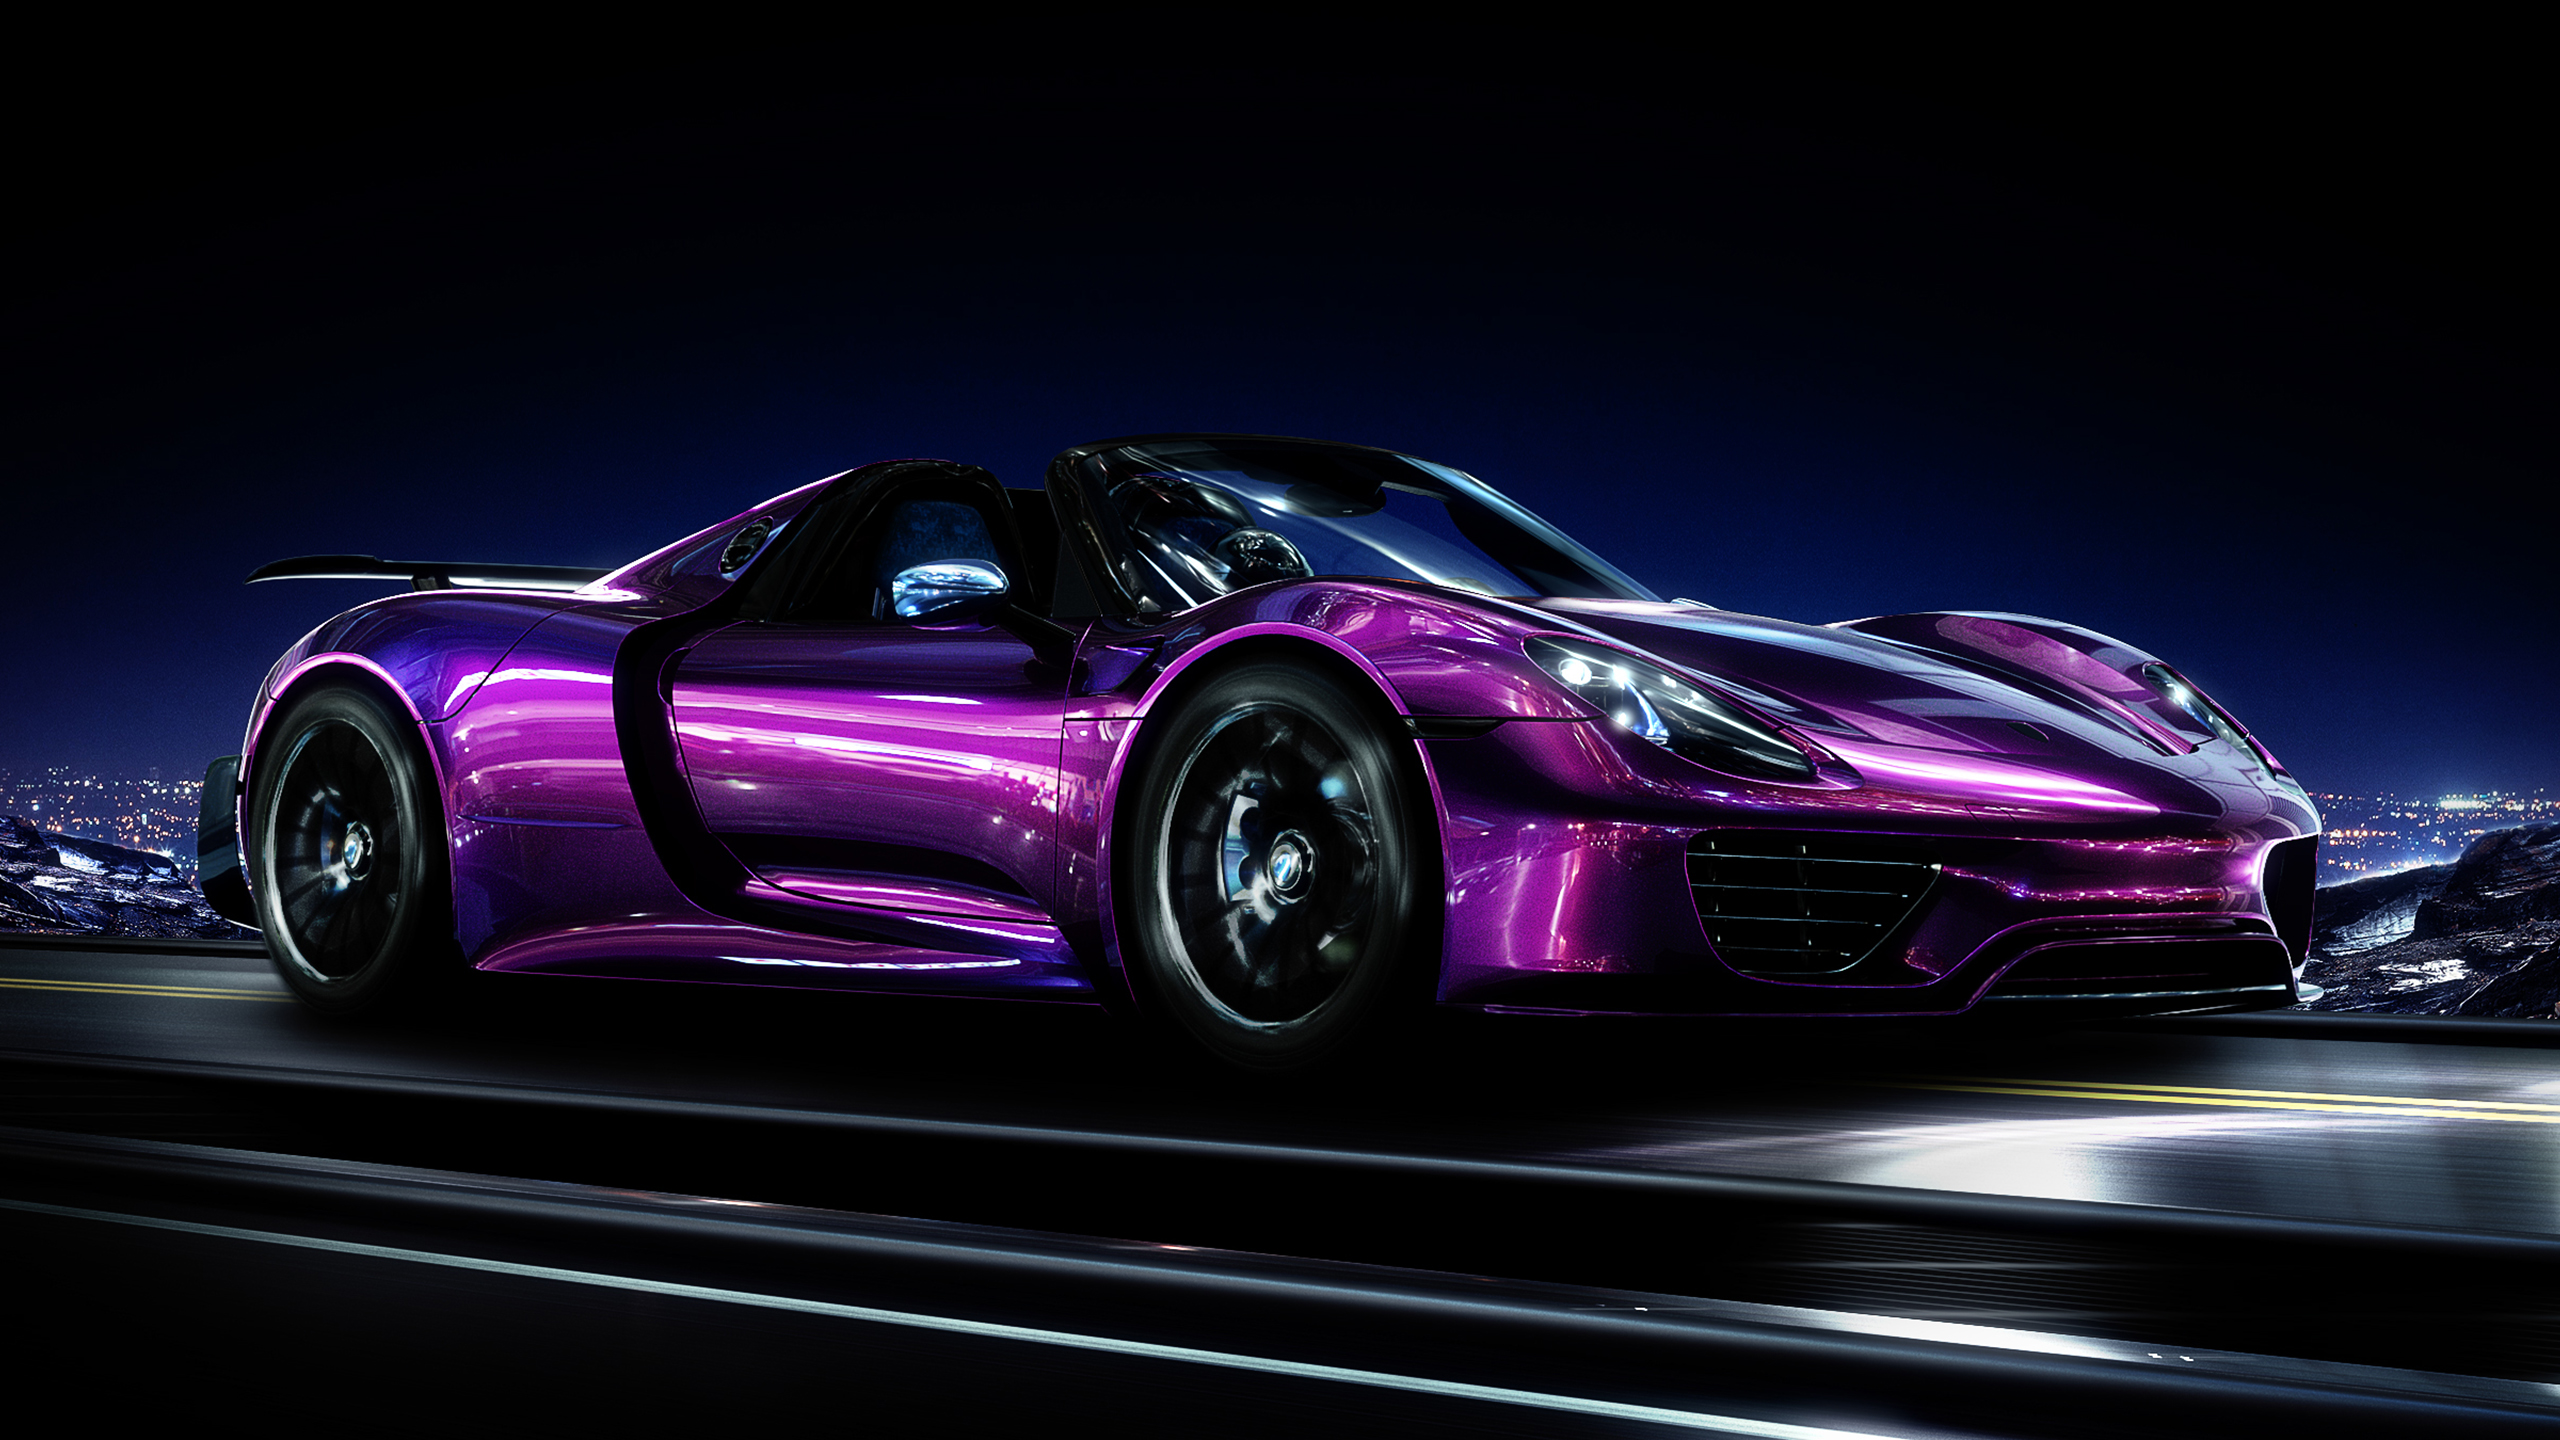 Porsche 918 Spyder Wallpaper Hd Car Wallpapers Id 10787